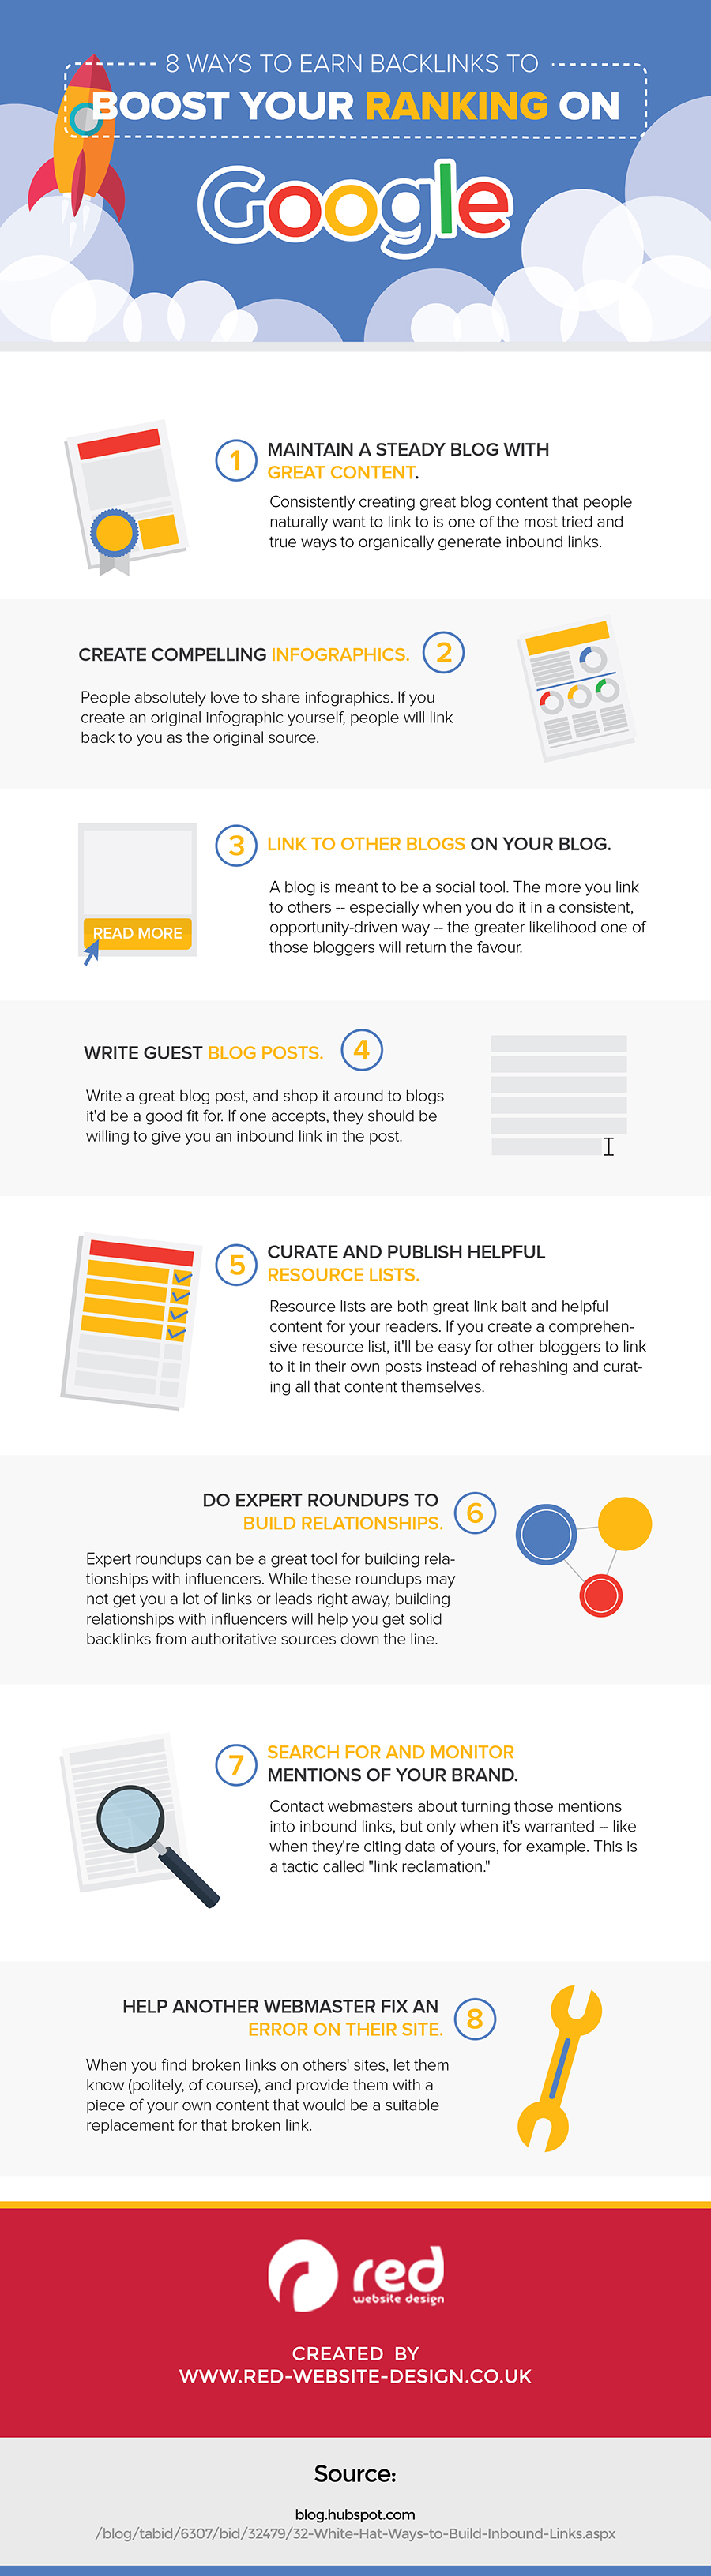 Backlinks infographic